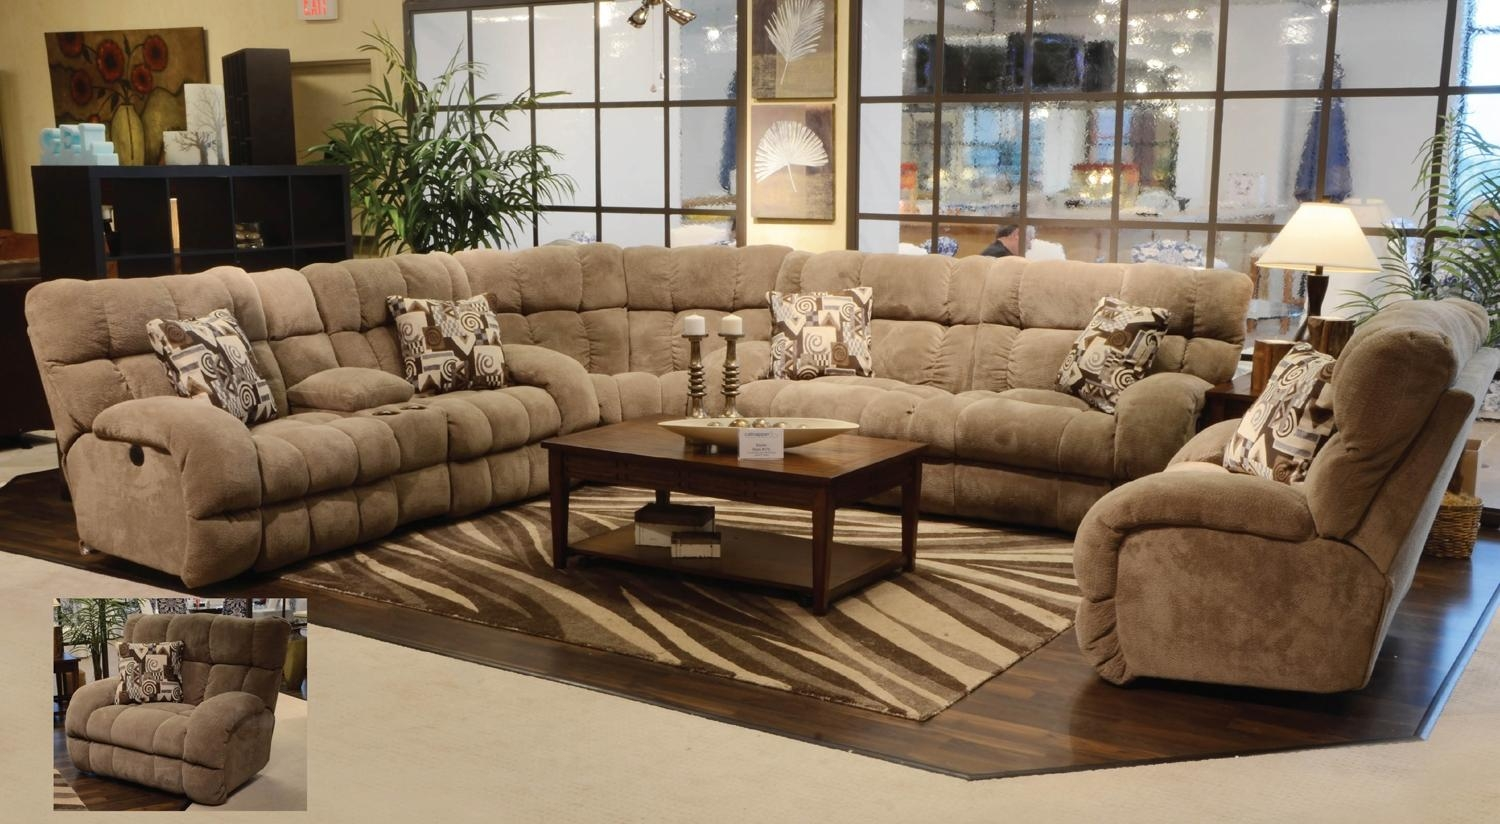 Sofas Center : Large Sectional Sofas With Chaise Extra Wilmington For Sectional With Large Ottoman (View 10 of 20)